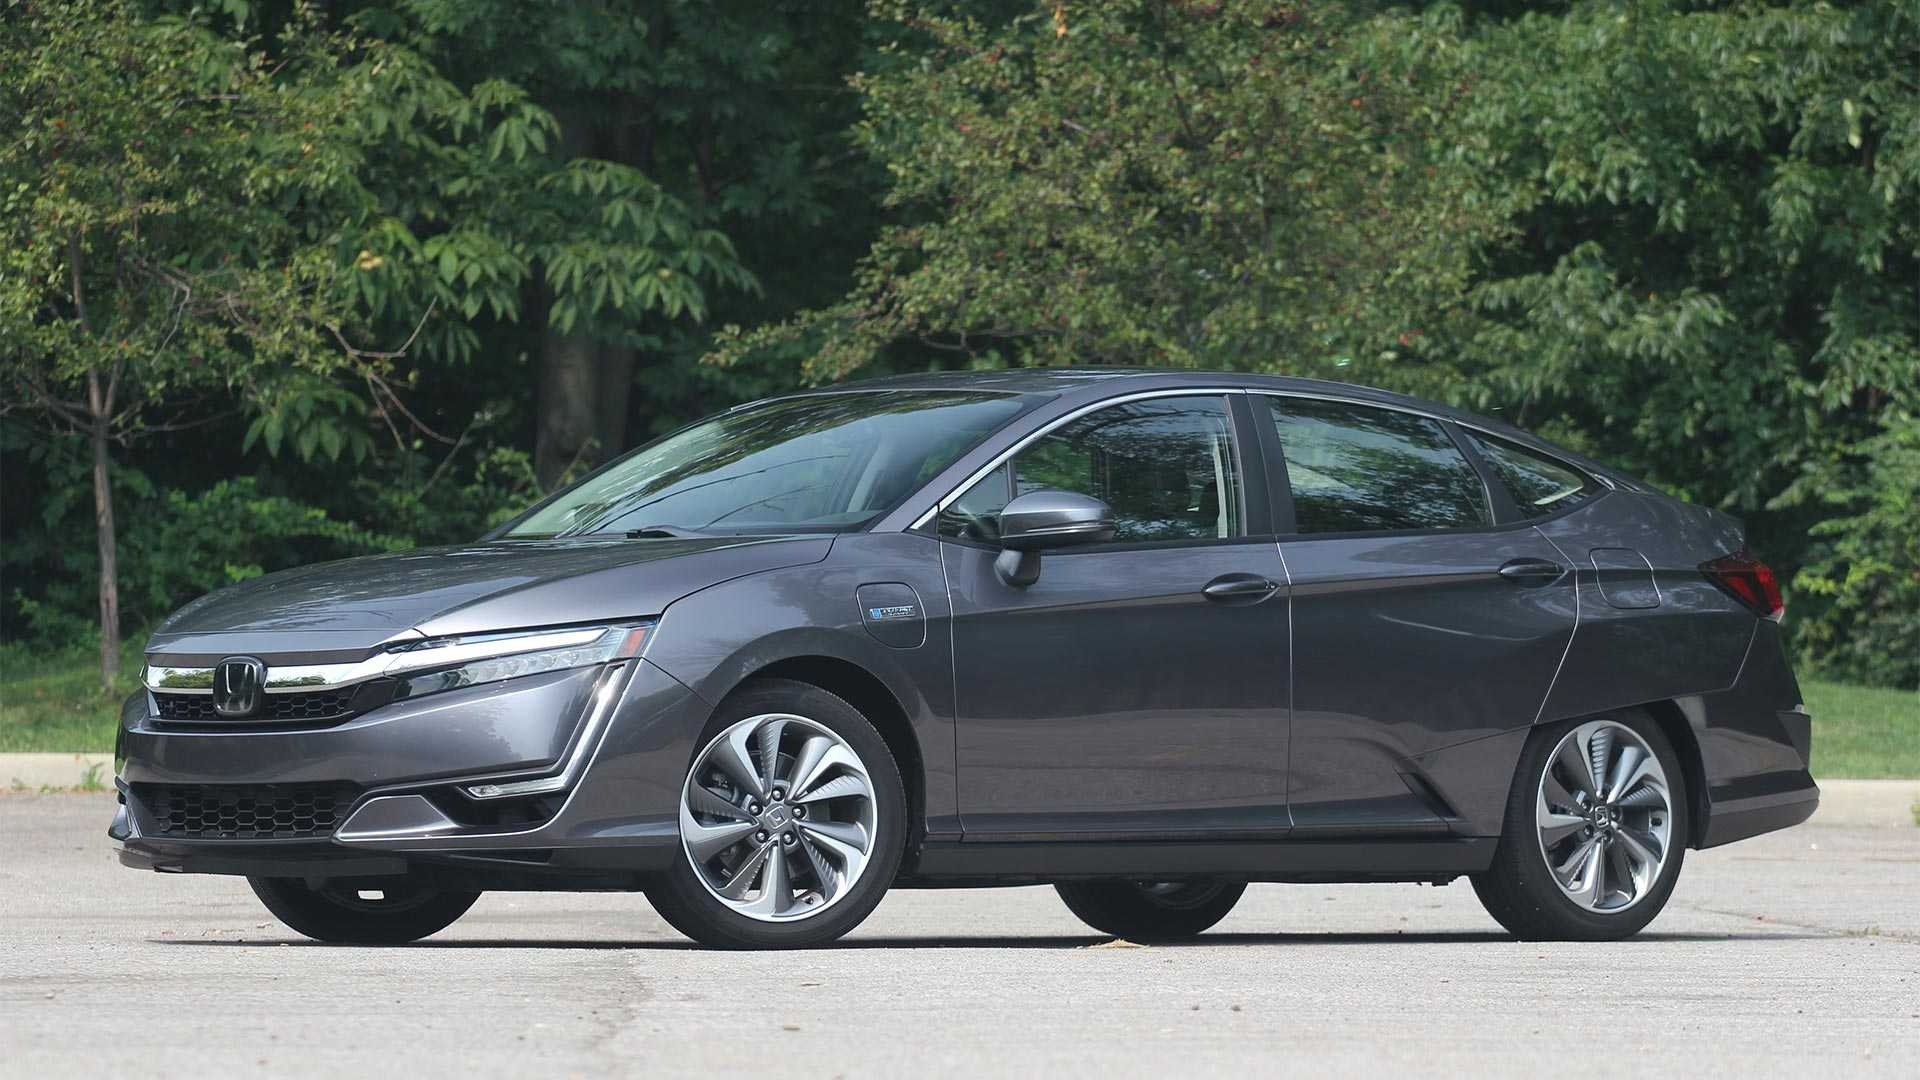 Owners Honda Com >> What Honda Clarity Owners Want You To Know About Their Car